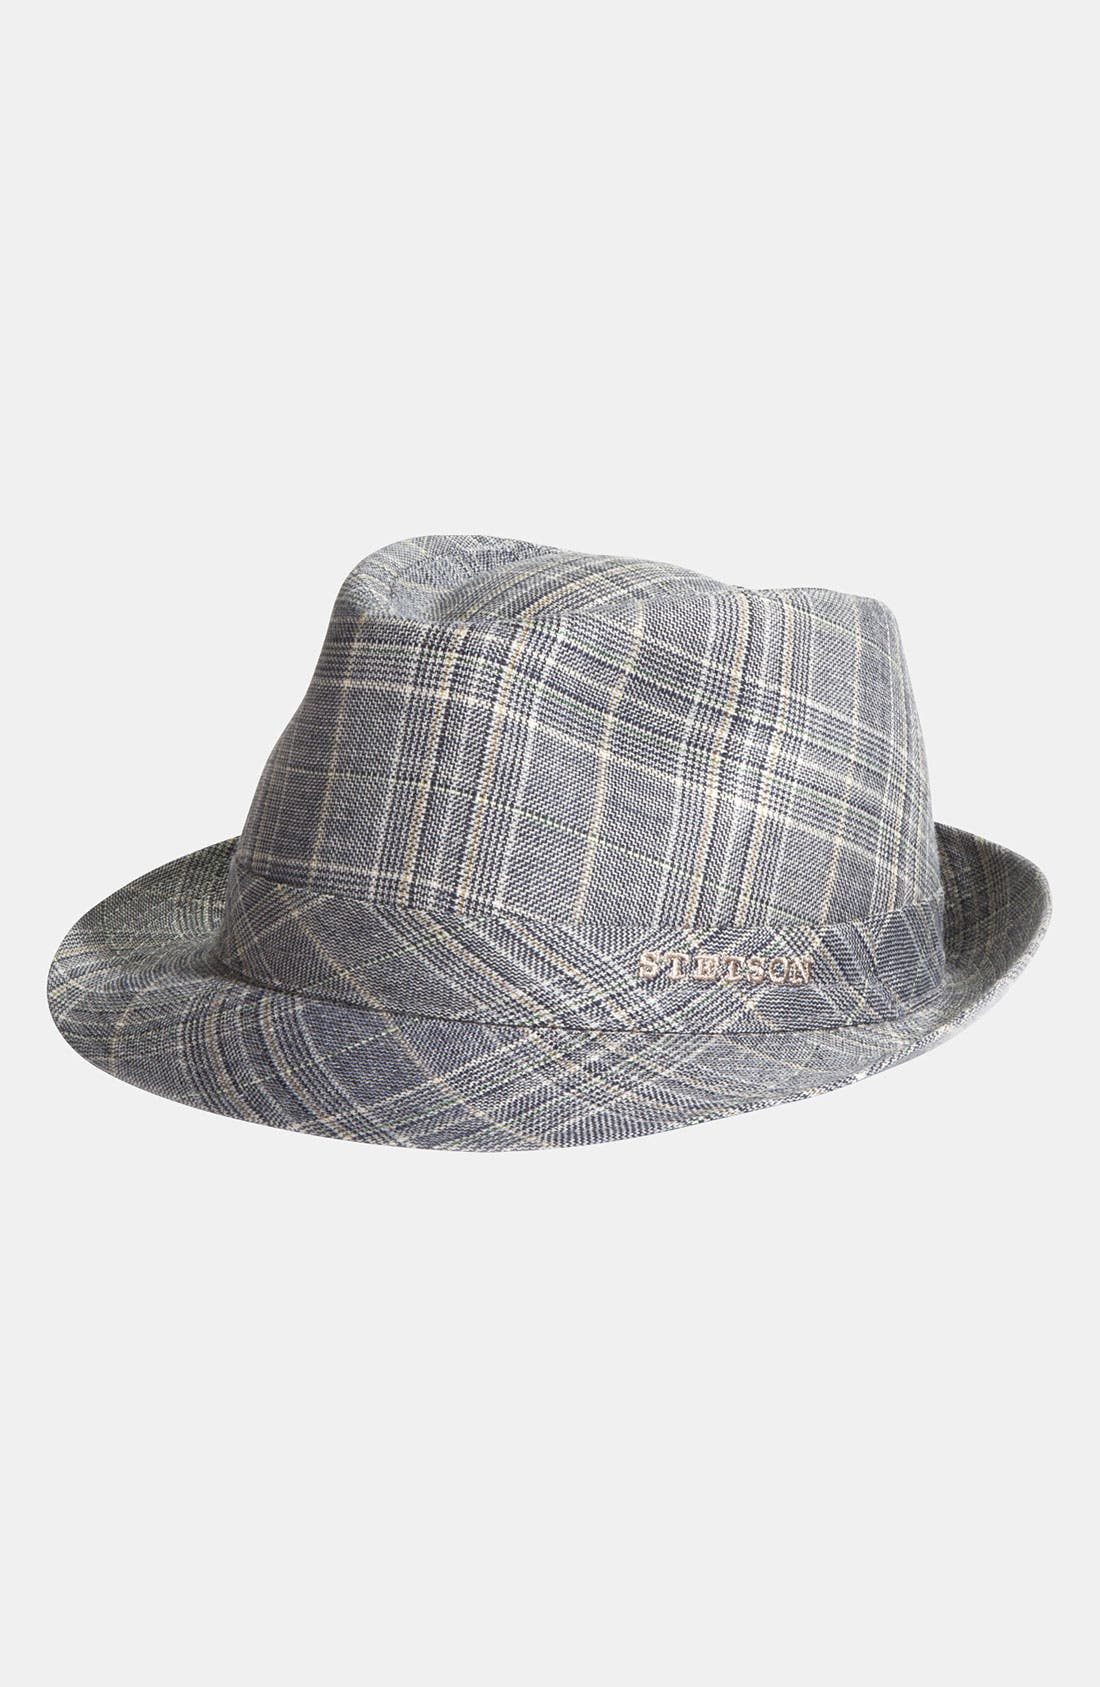 Alternate Image 1 Selected - Stetson 'Tropical' Fedora